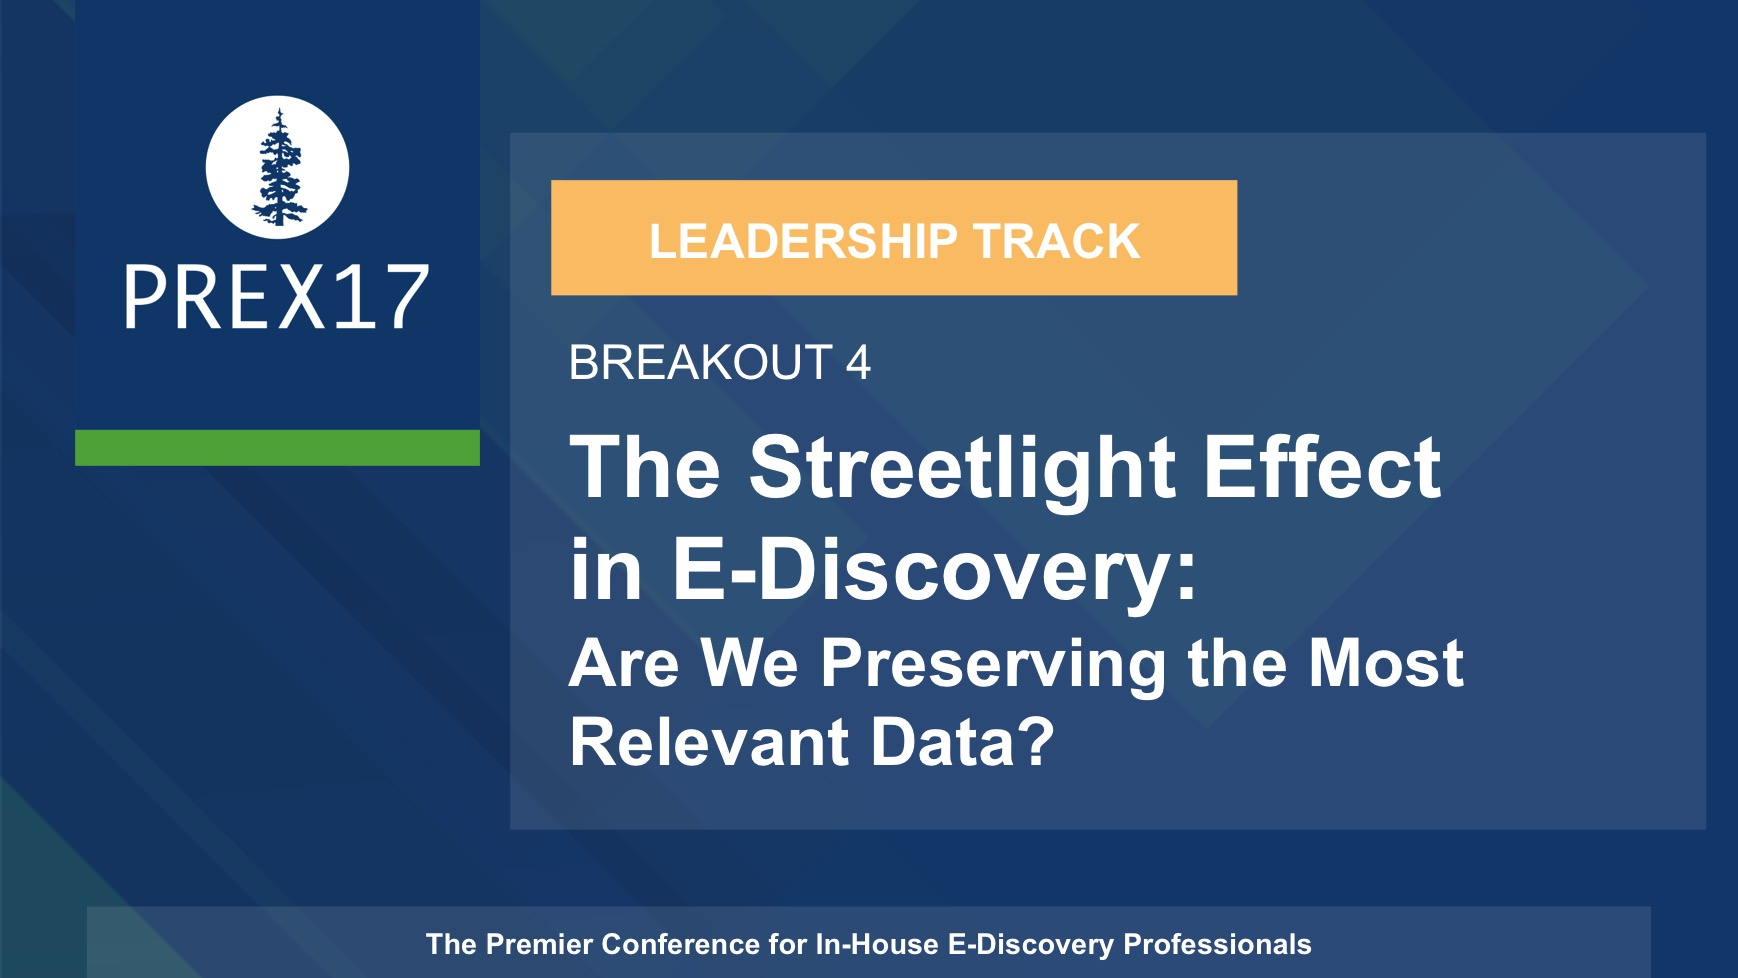 (Breakout 4 - Leadership) The Streetlight Effect in E-Discovery: Are We Preserving the Most Relevant Data?